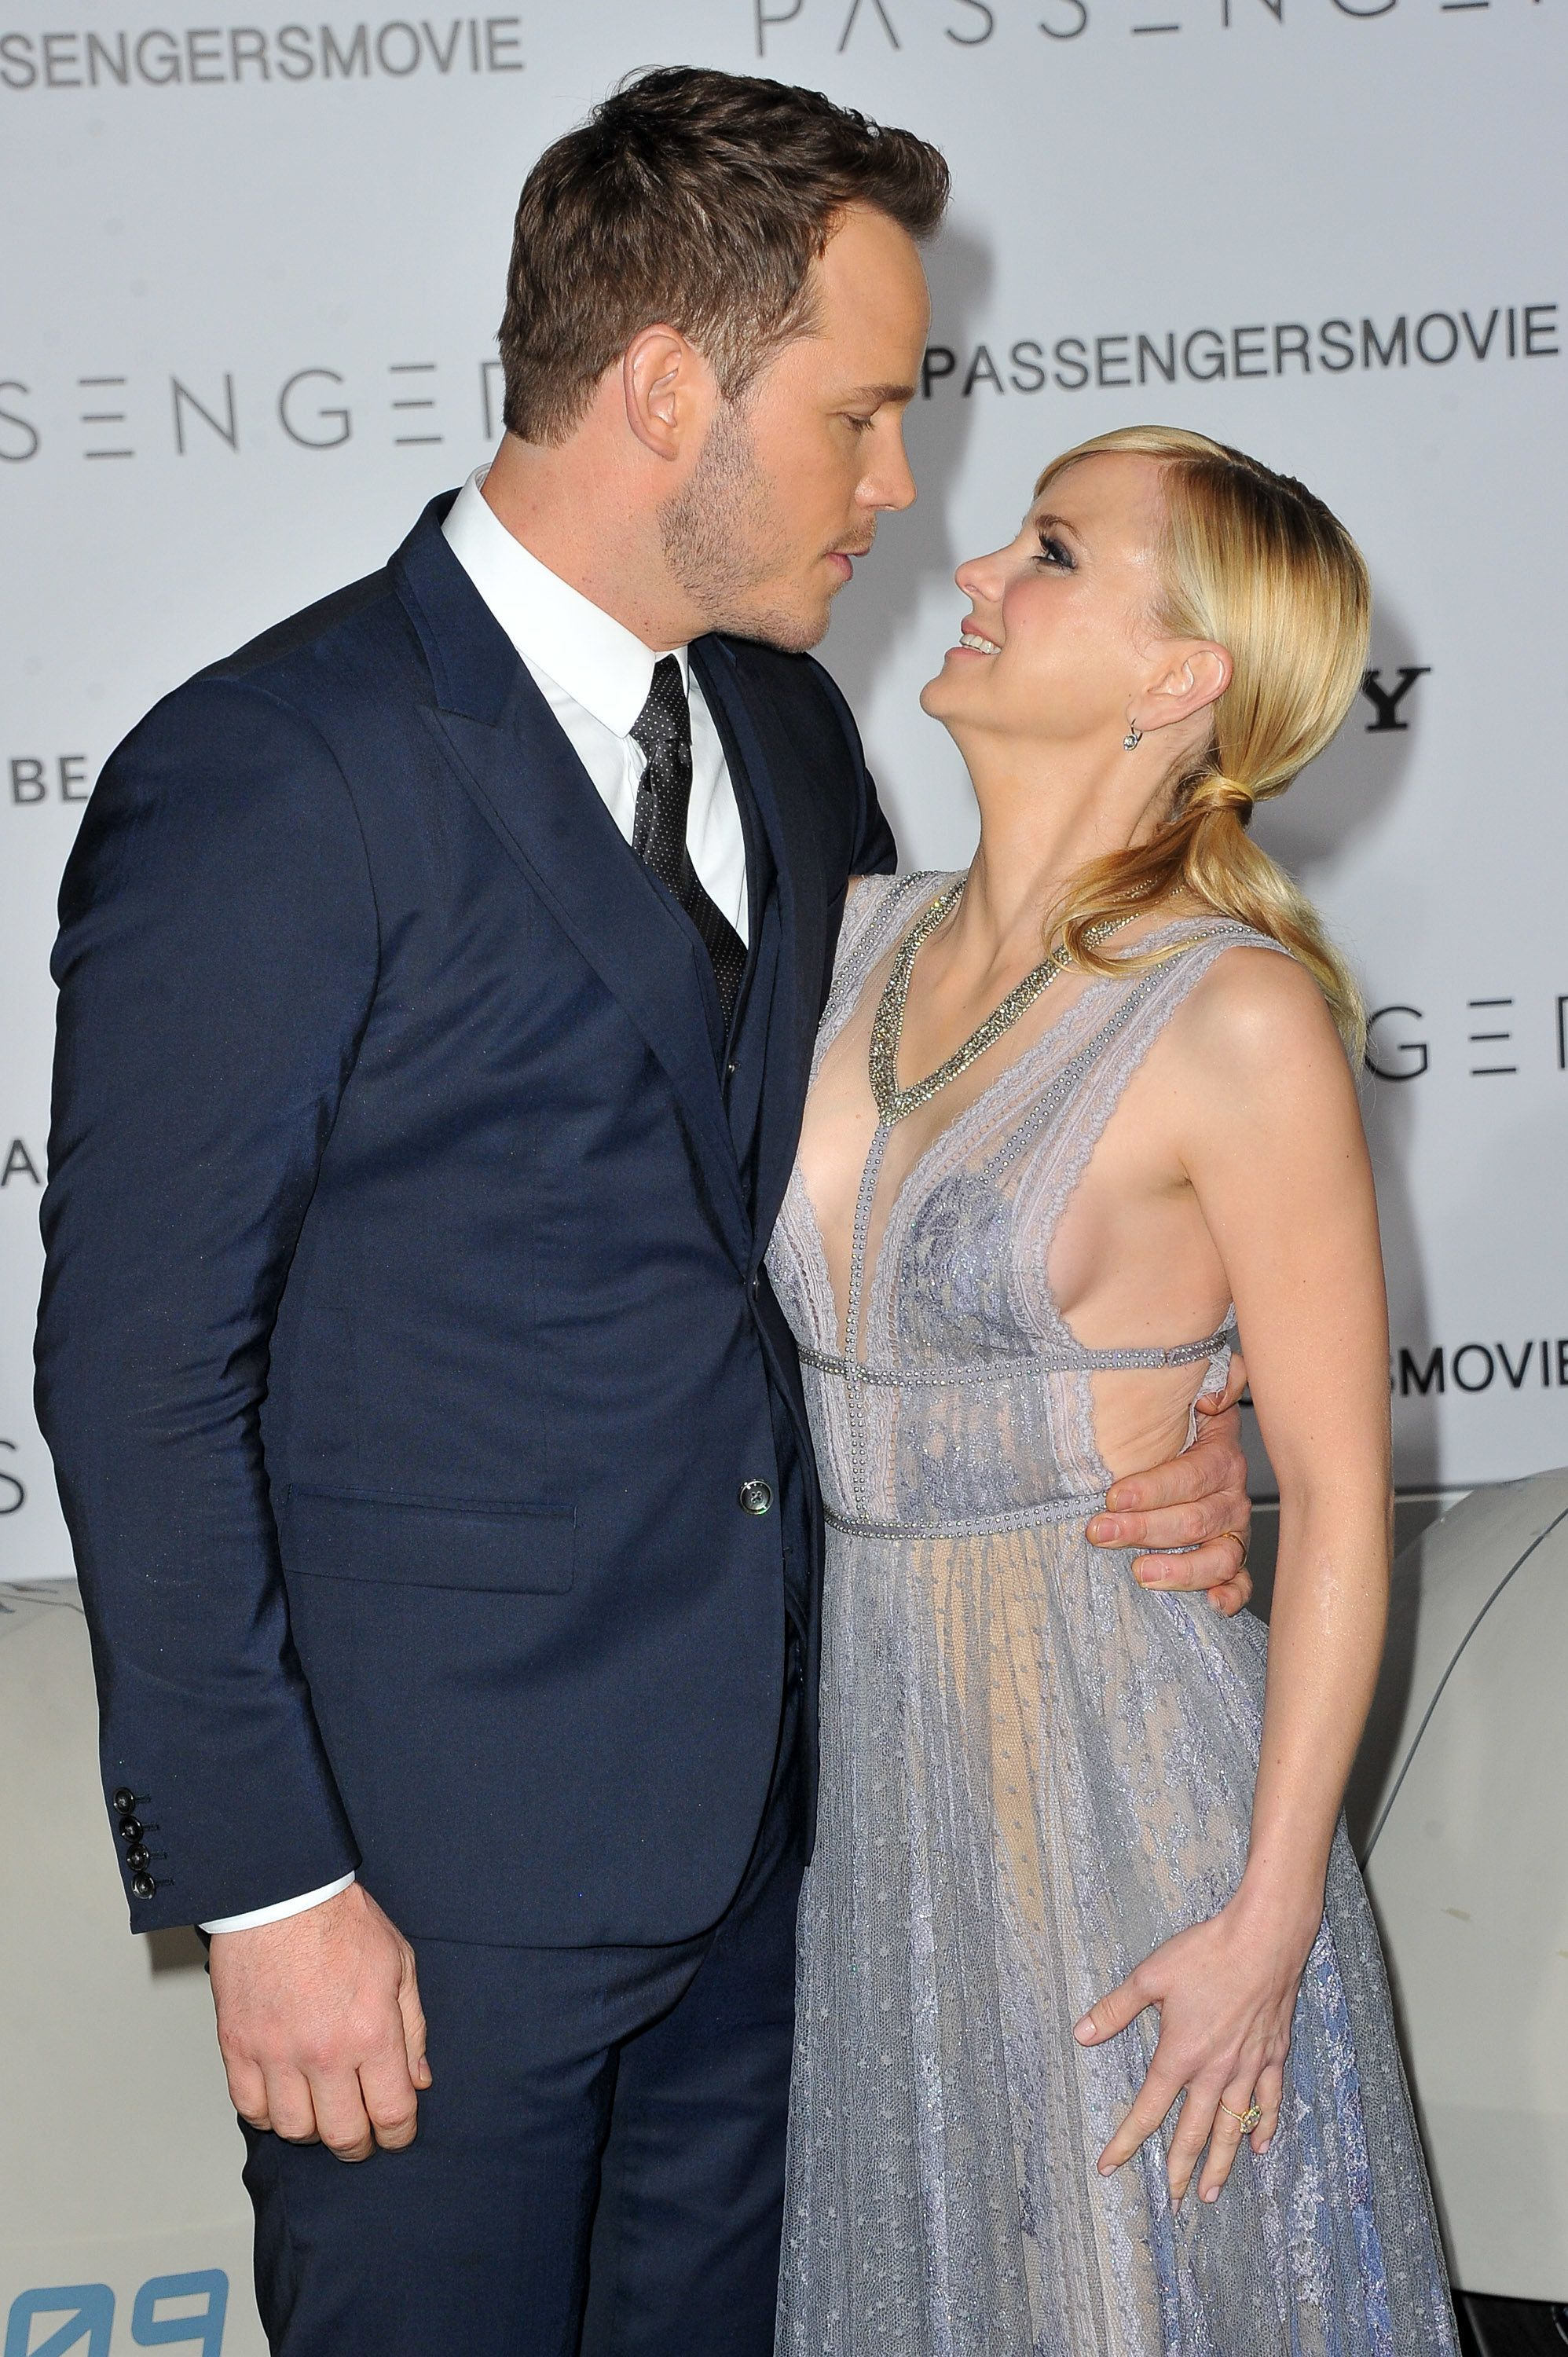 No One On Social Media Knows How To React To Chris Pratt And Anna Farris's Split